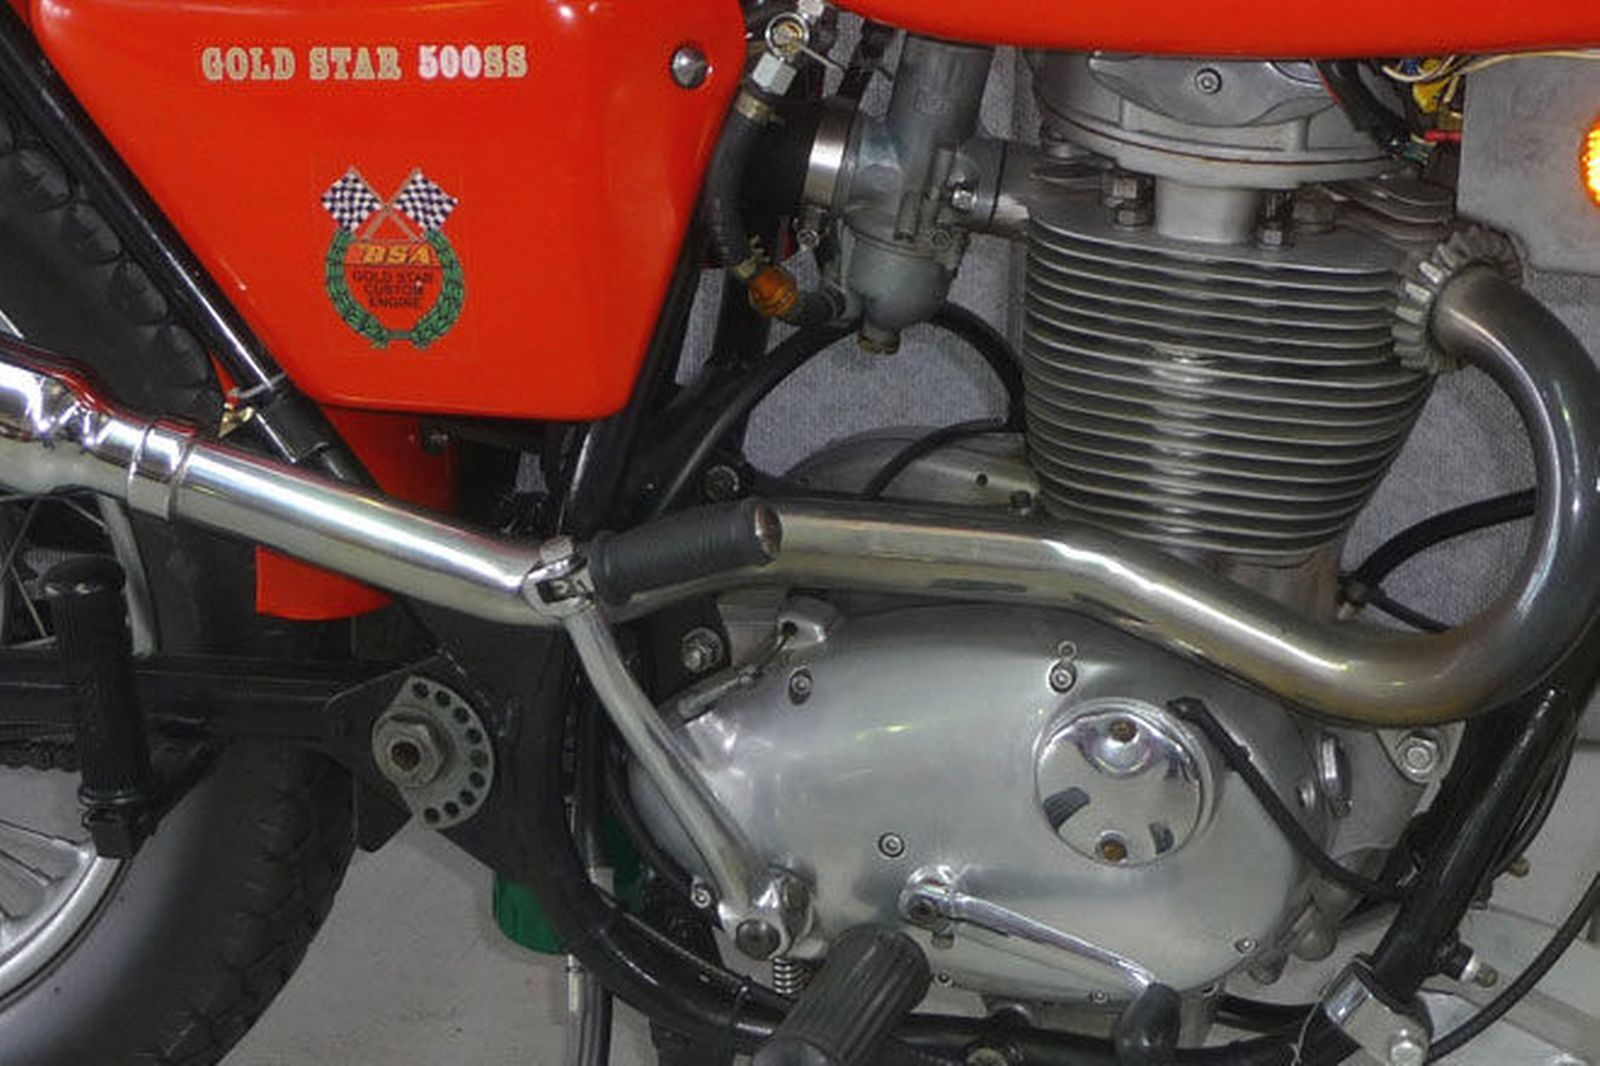 BSA 500 SS Gold Star 1971 images #93868